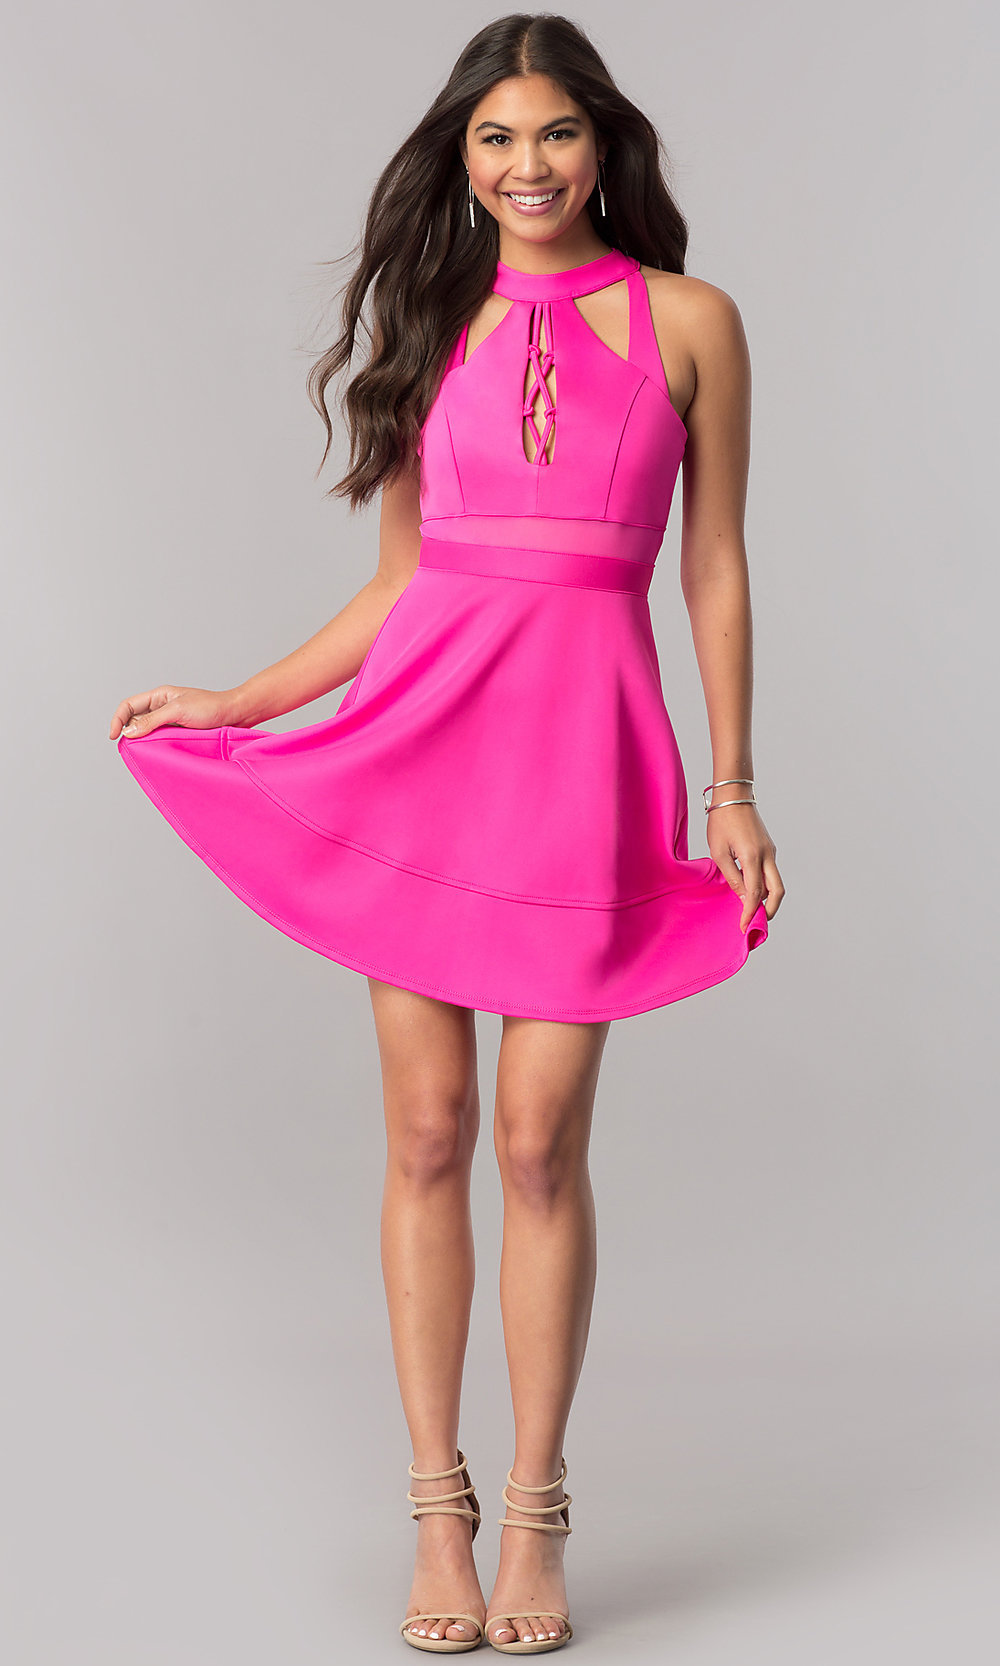 7cd43686a4bf37 Cheap Hot Pink Cut-Out Short Party Dress - PromGirl